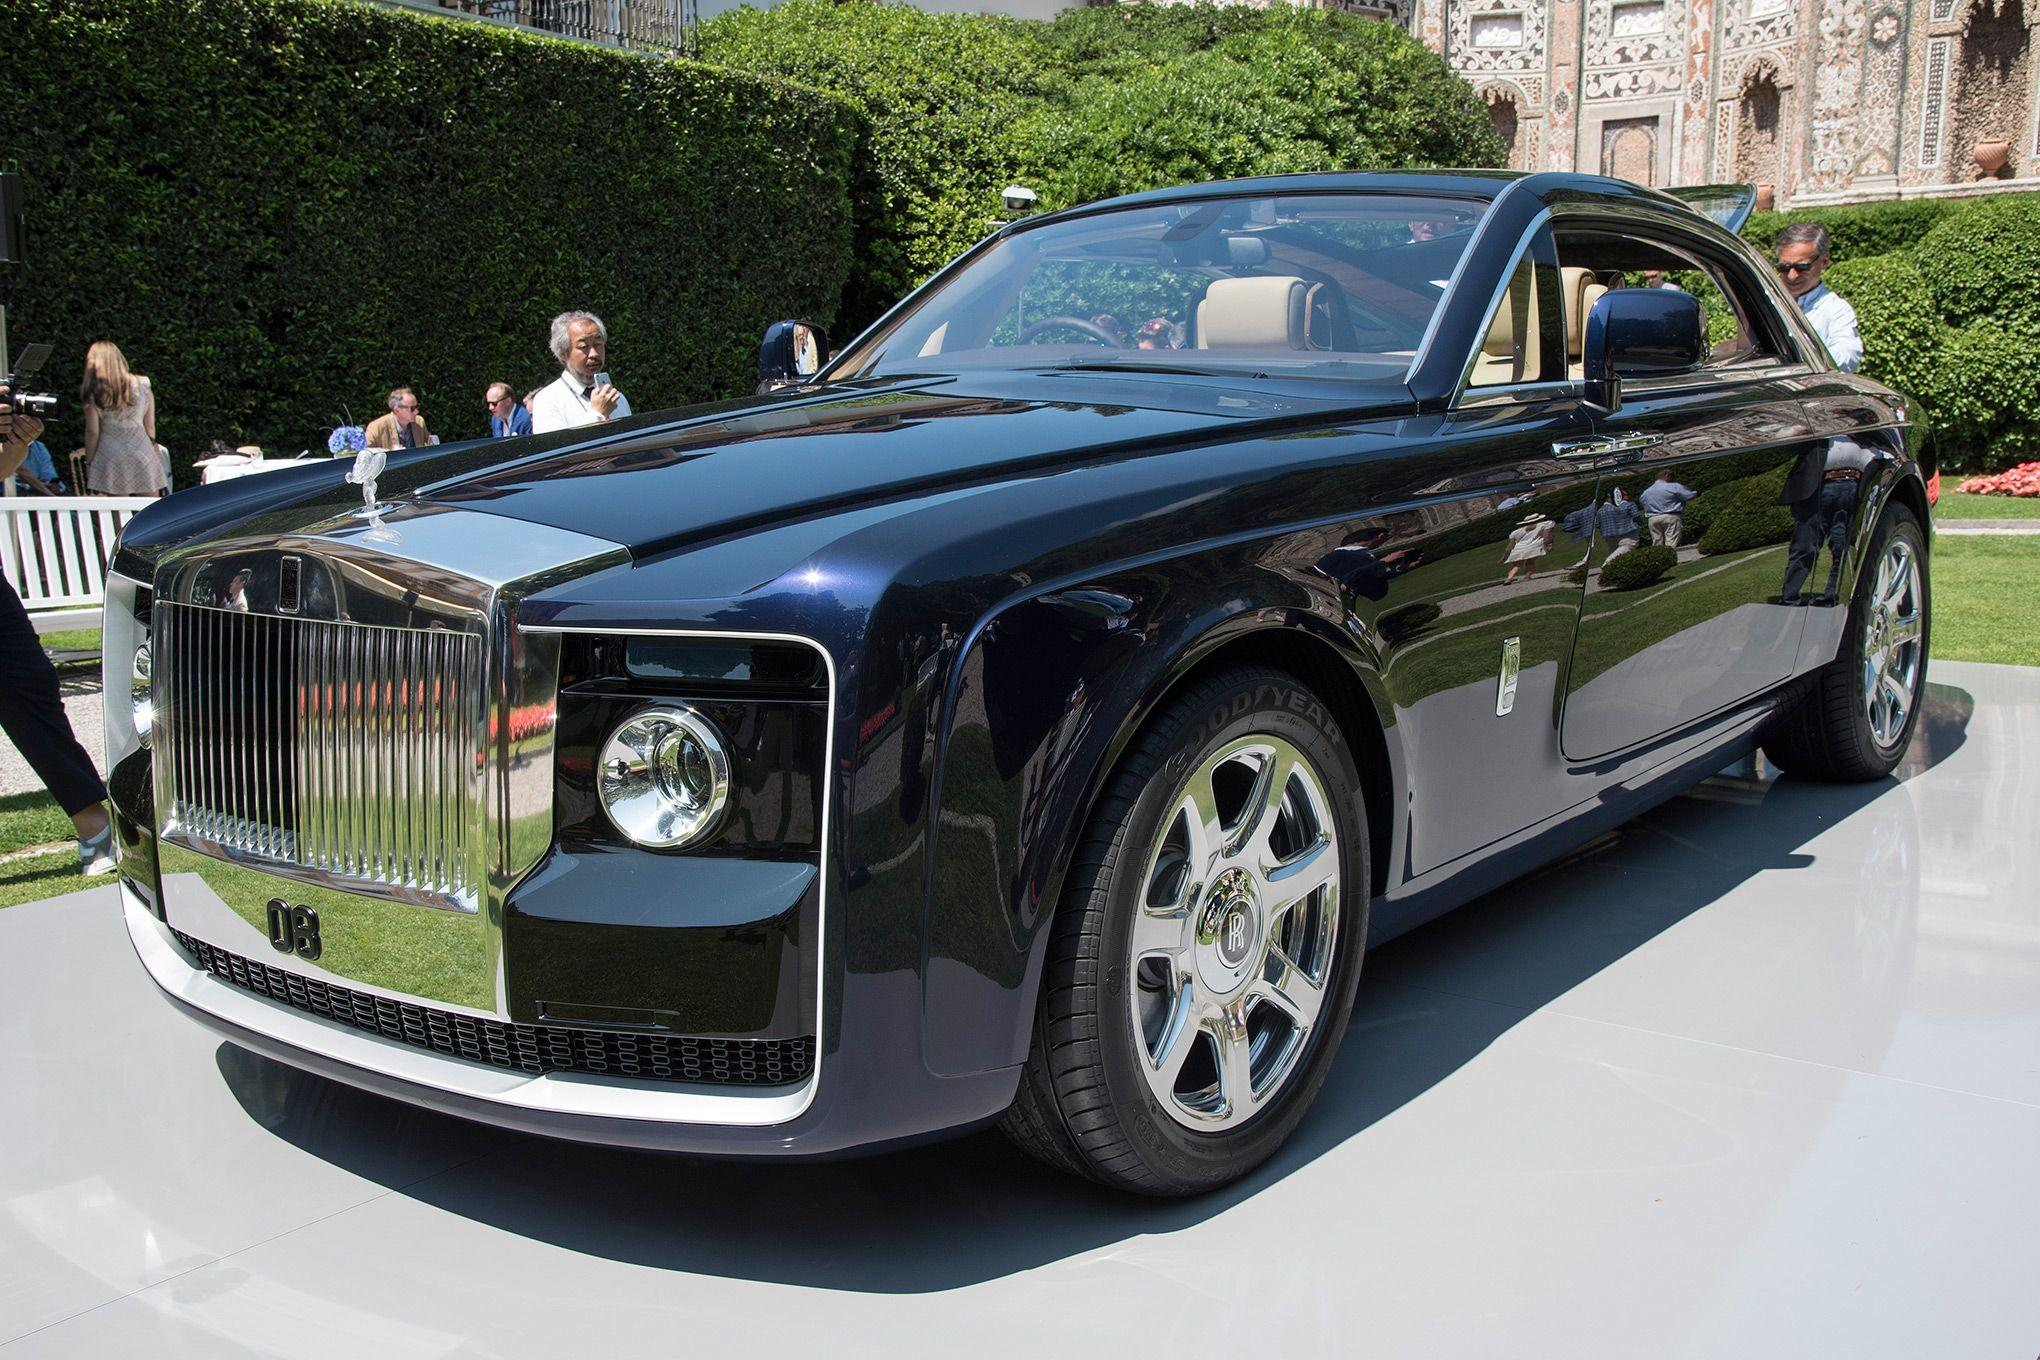 Royal Royce Price 111 | bmw wallpaper